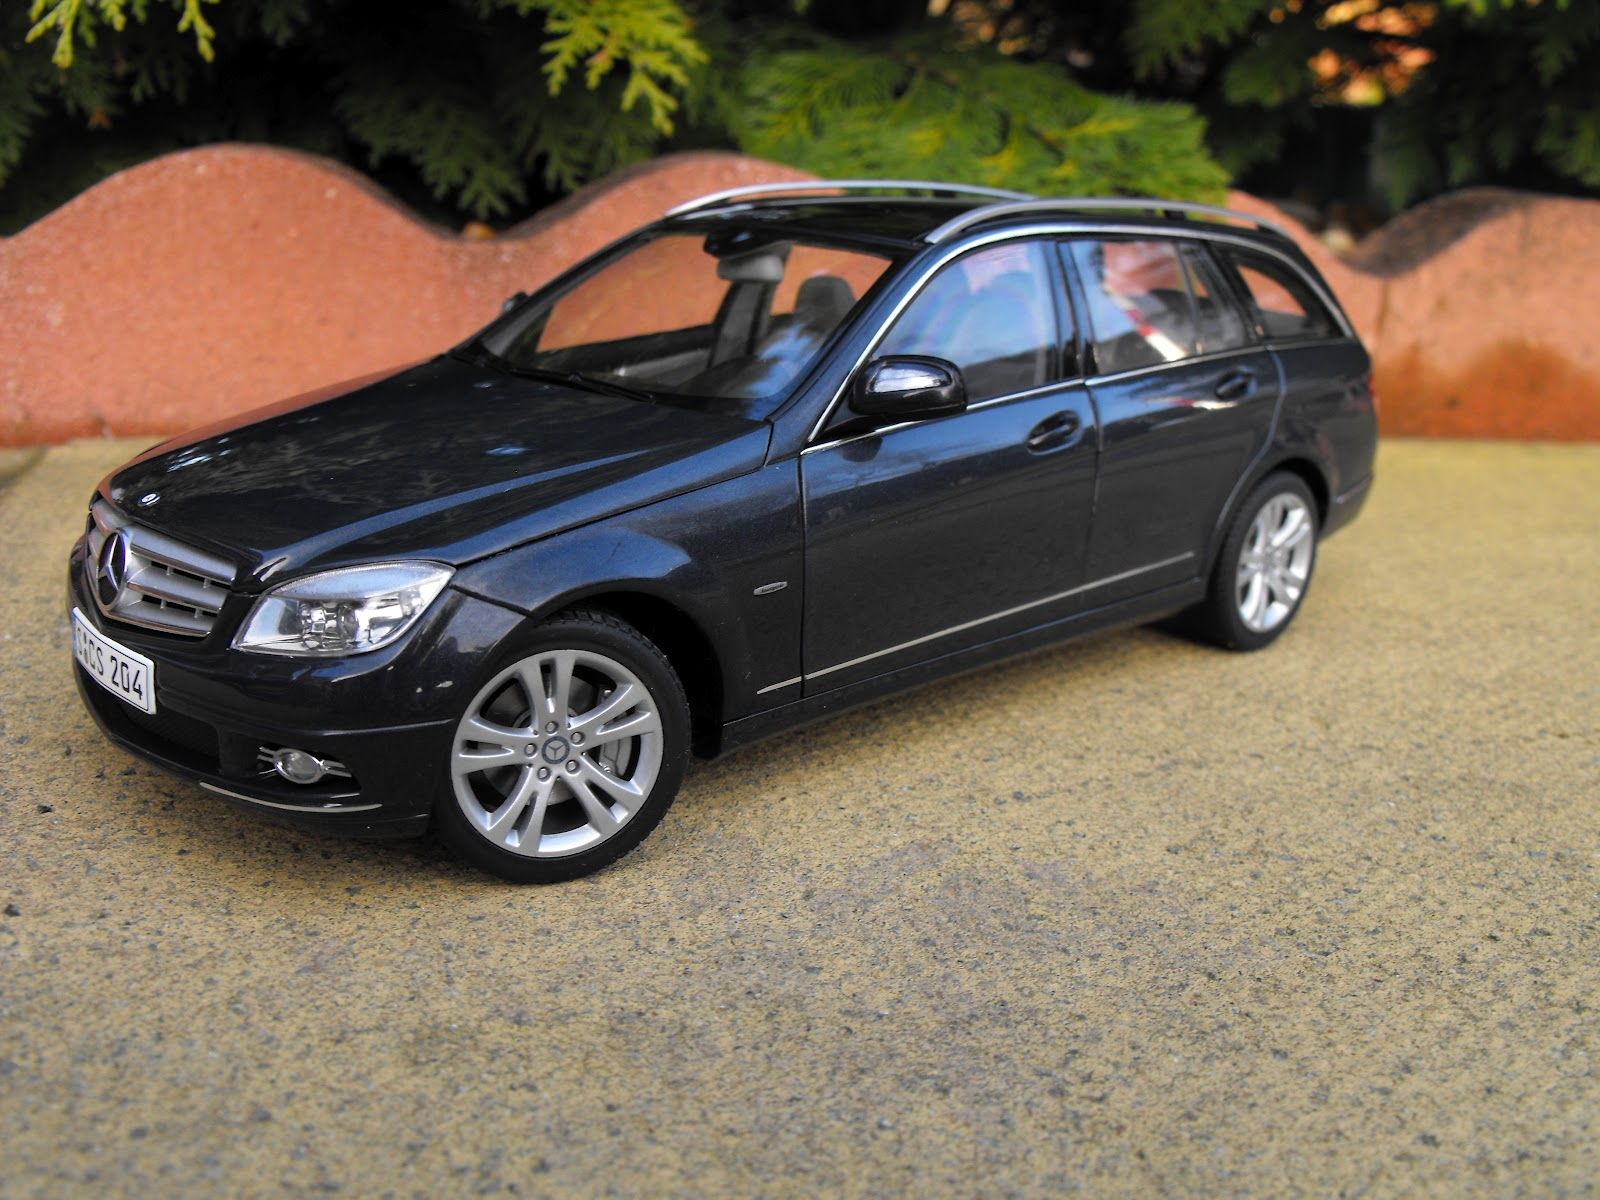 Diecast passion mercedes benz c class t w204 for Diecast mercedes benz